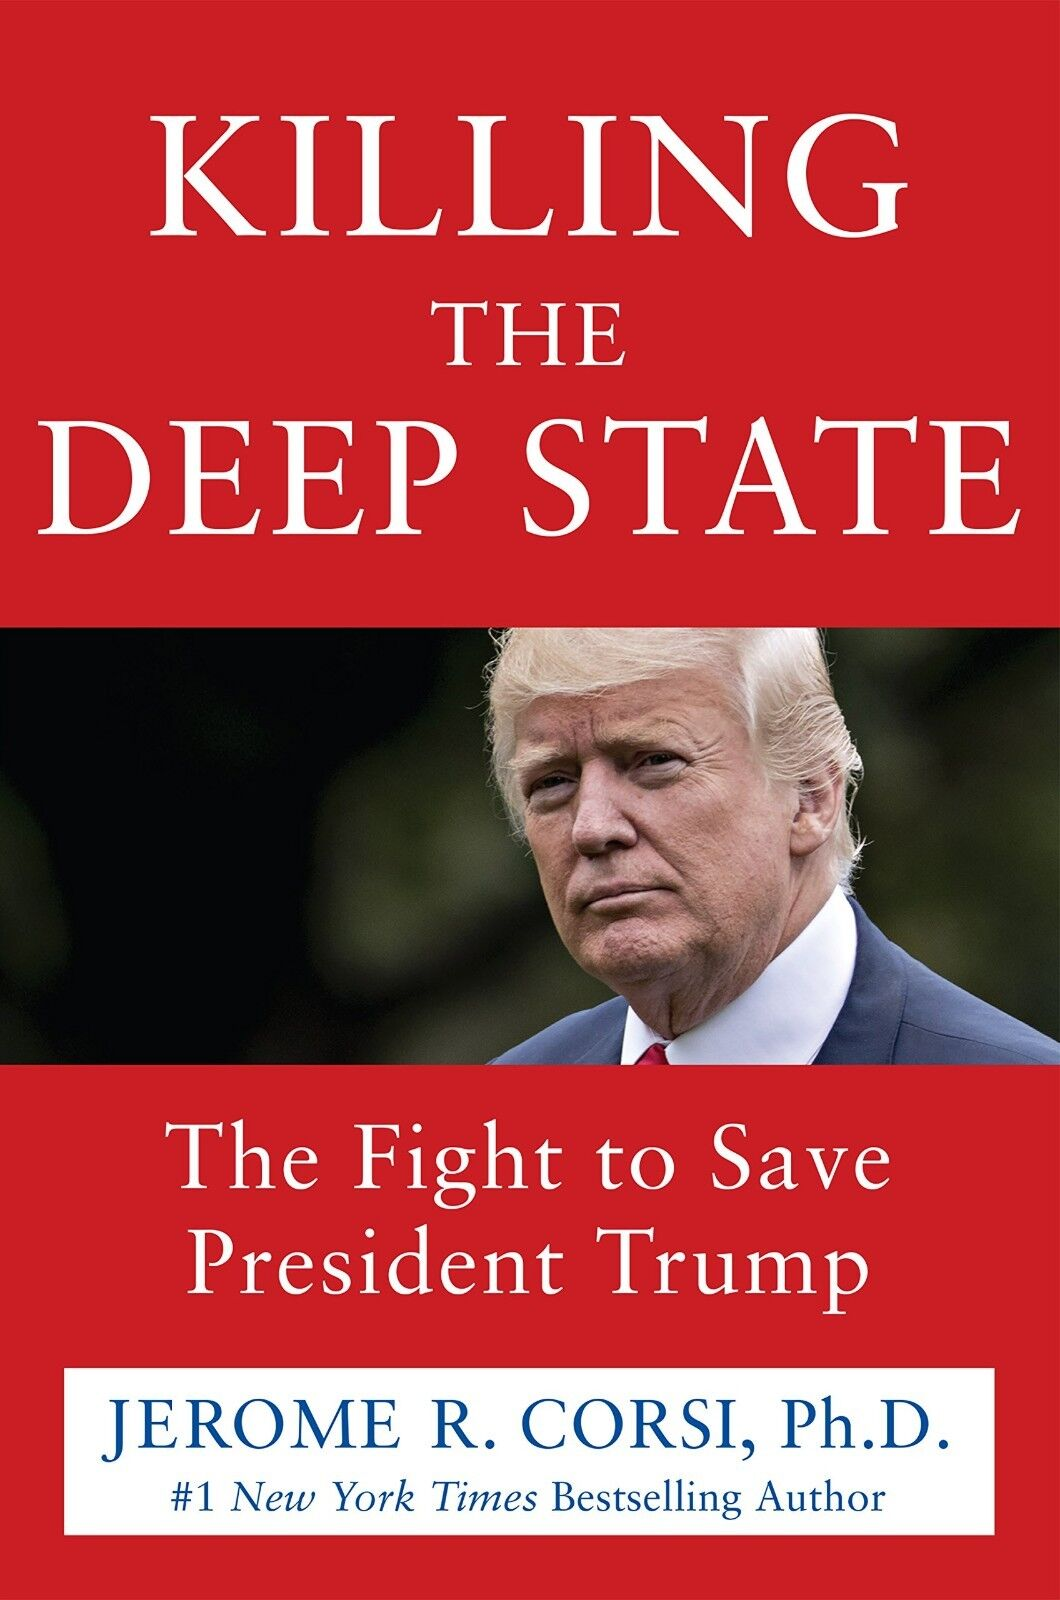 Killing The Deep State The Fight To Save By Jerome R. Corsi Ph.D. Hardcover New